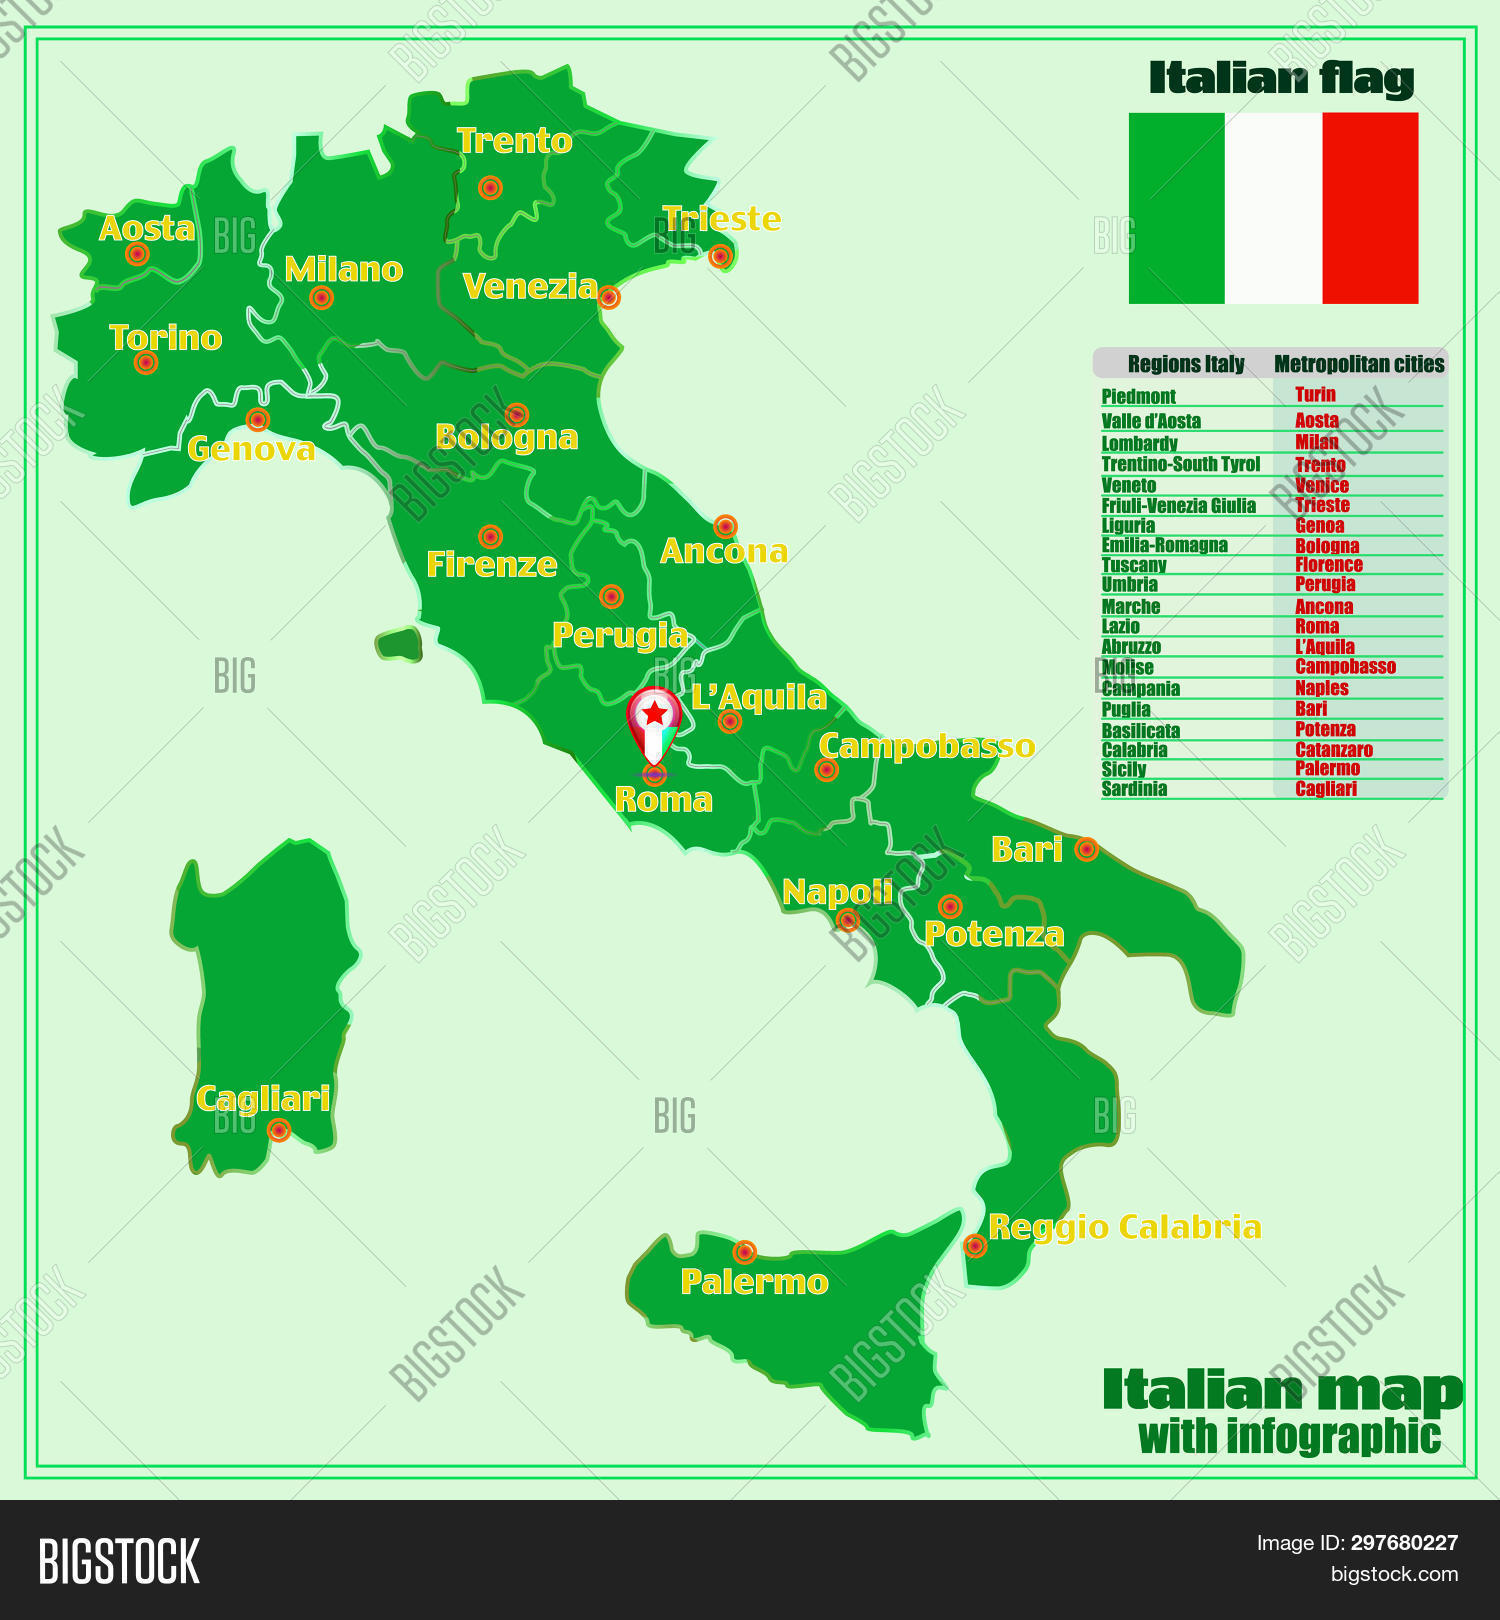 Map Of Italy In Italian.Map Italy Infographic Image Photo Free Trial Bigstock